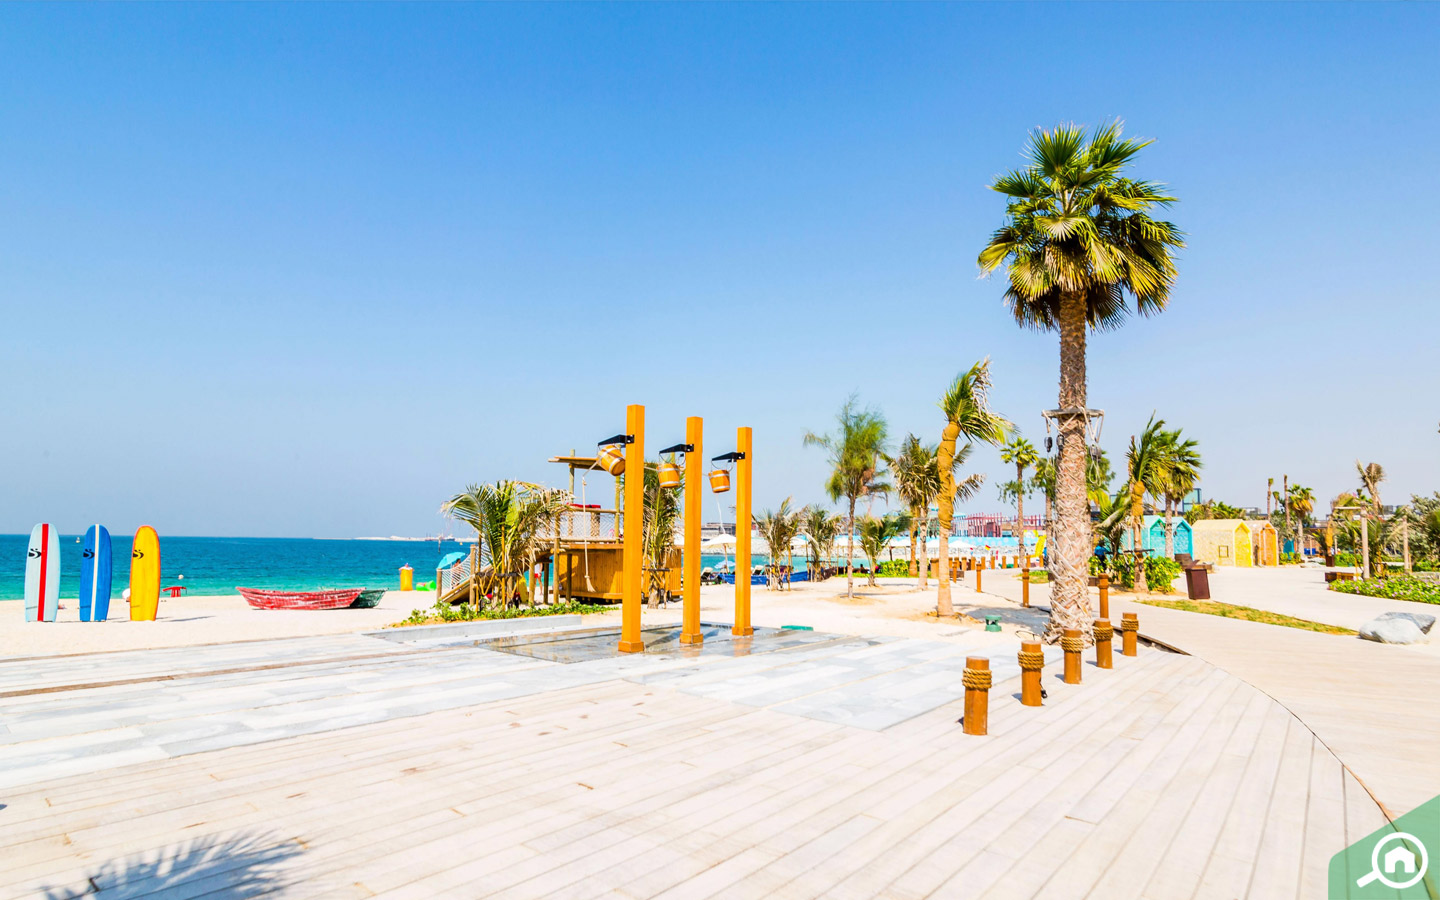 La Mer beach is a great spot to take parents visiting Dubai